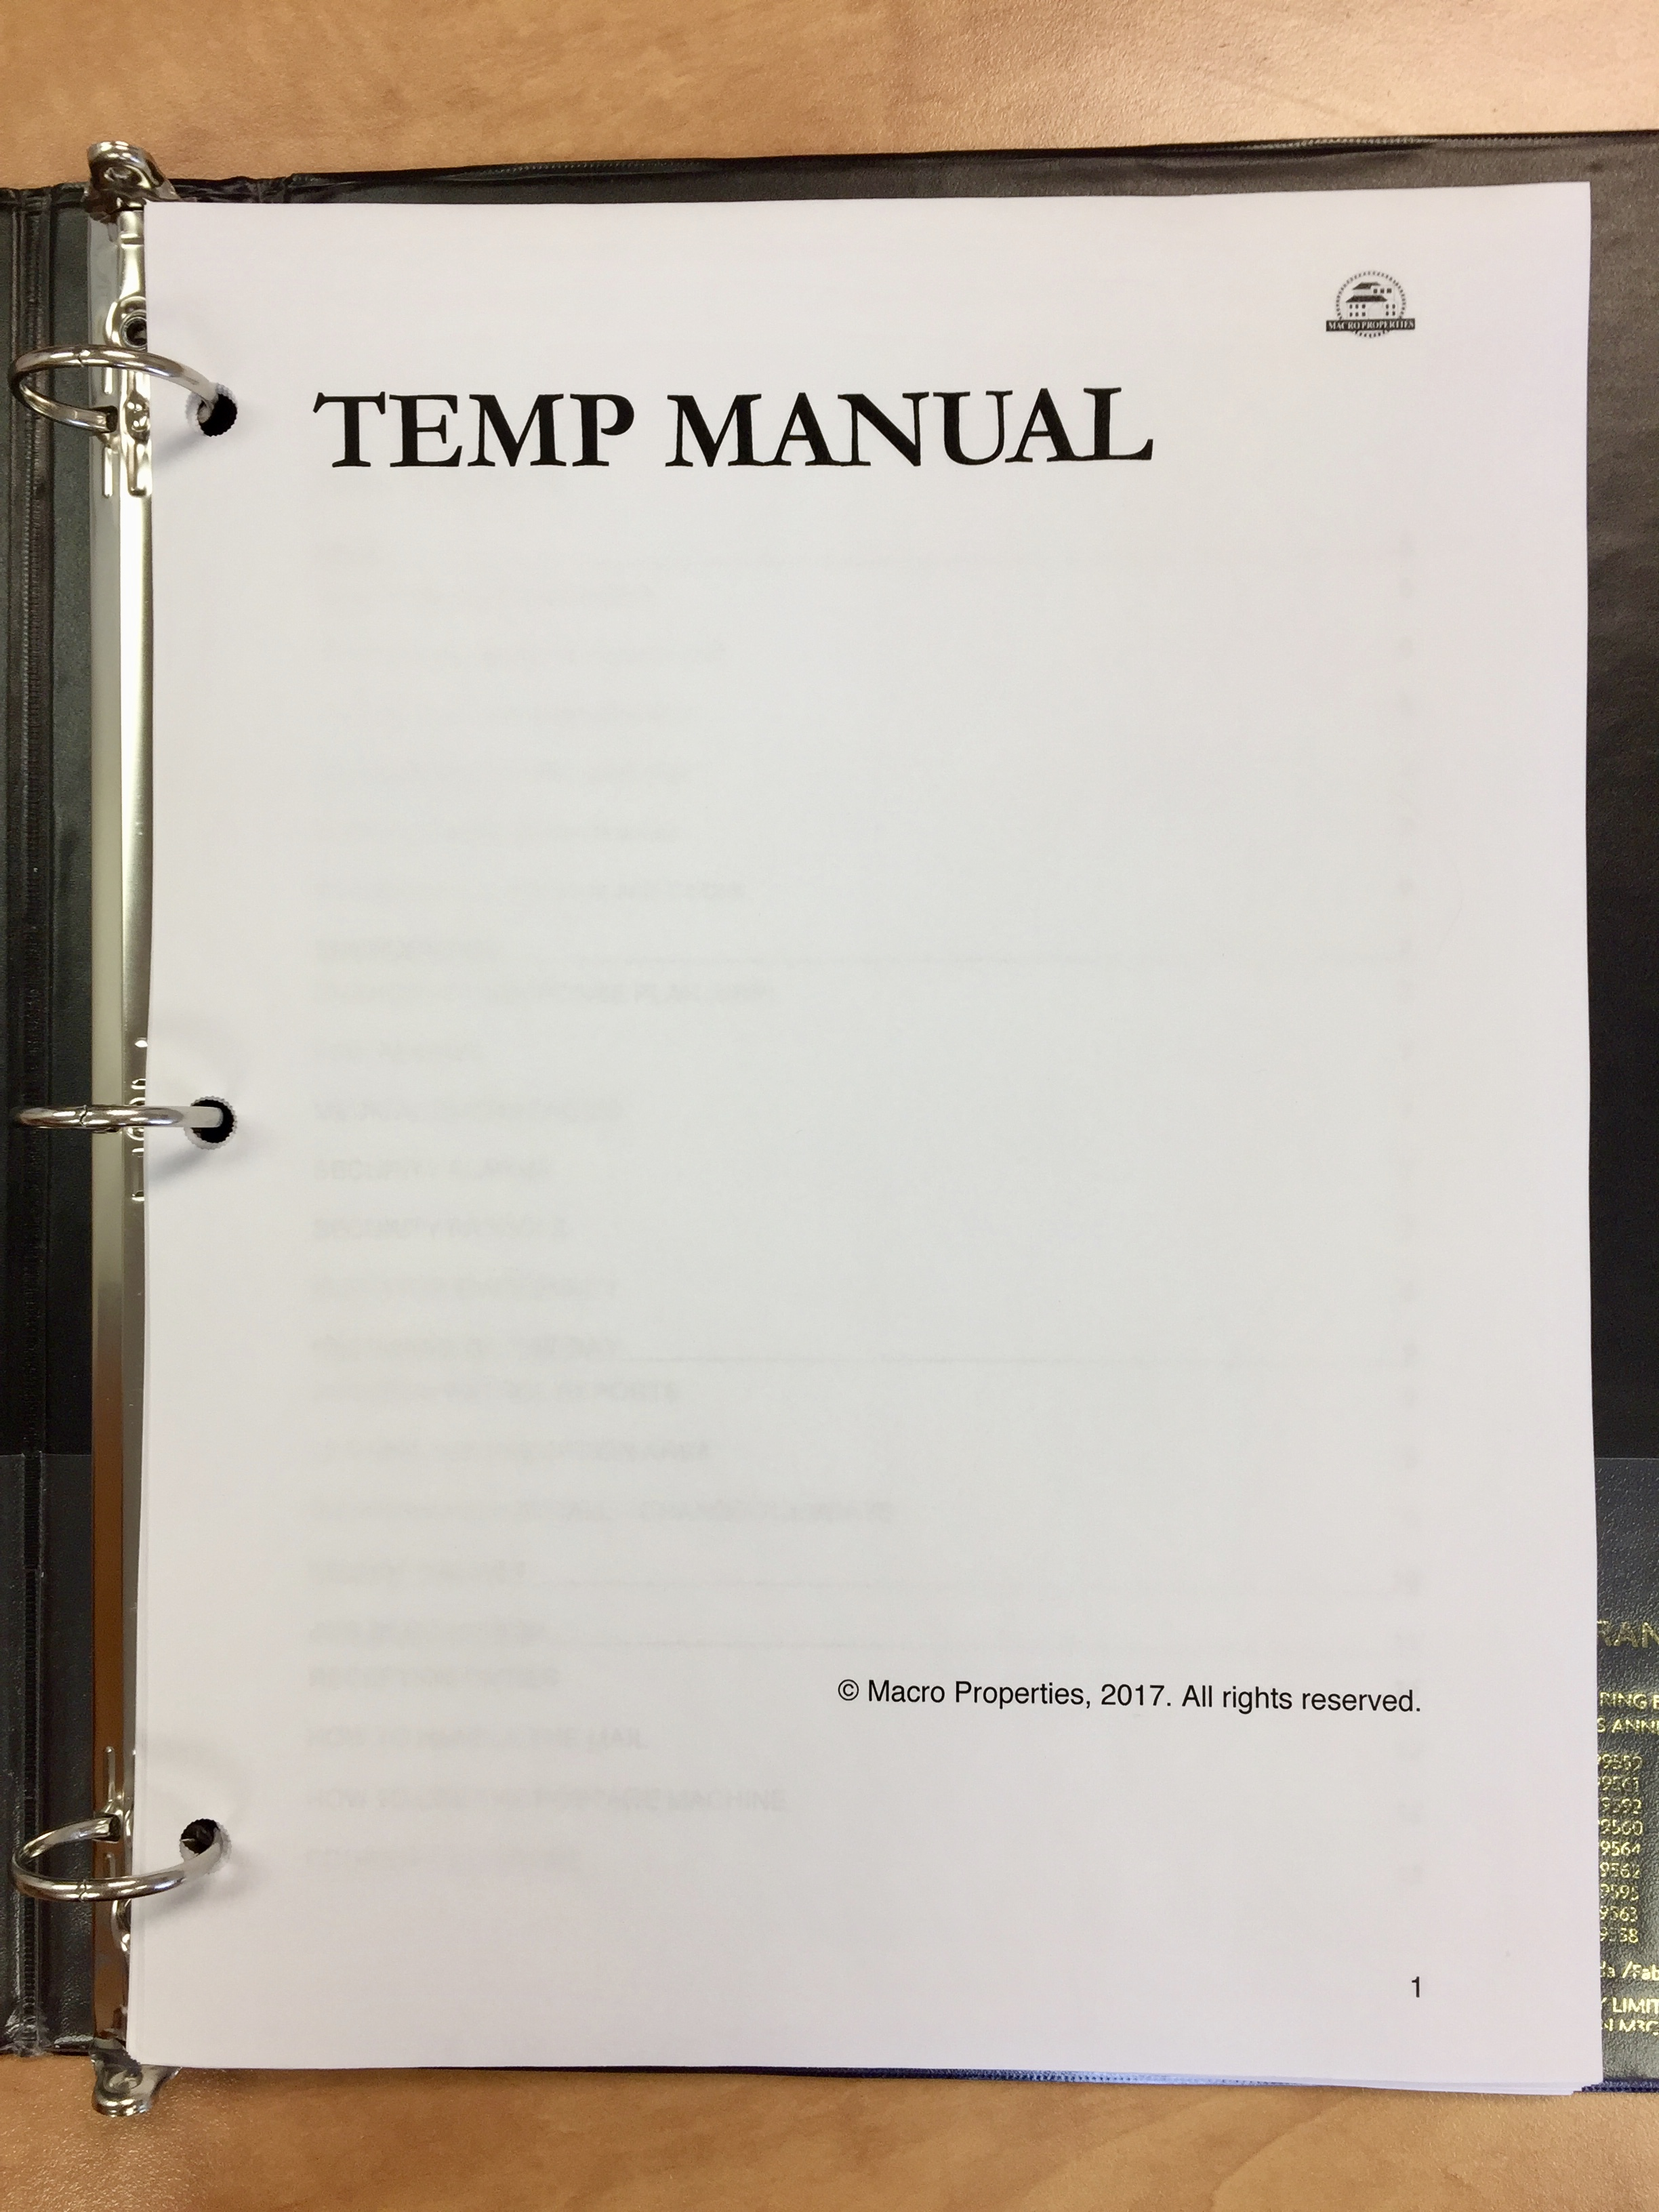 Temp Manual – Macro Properties